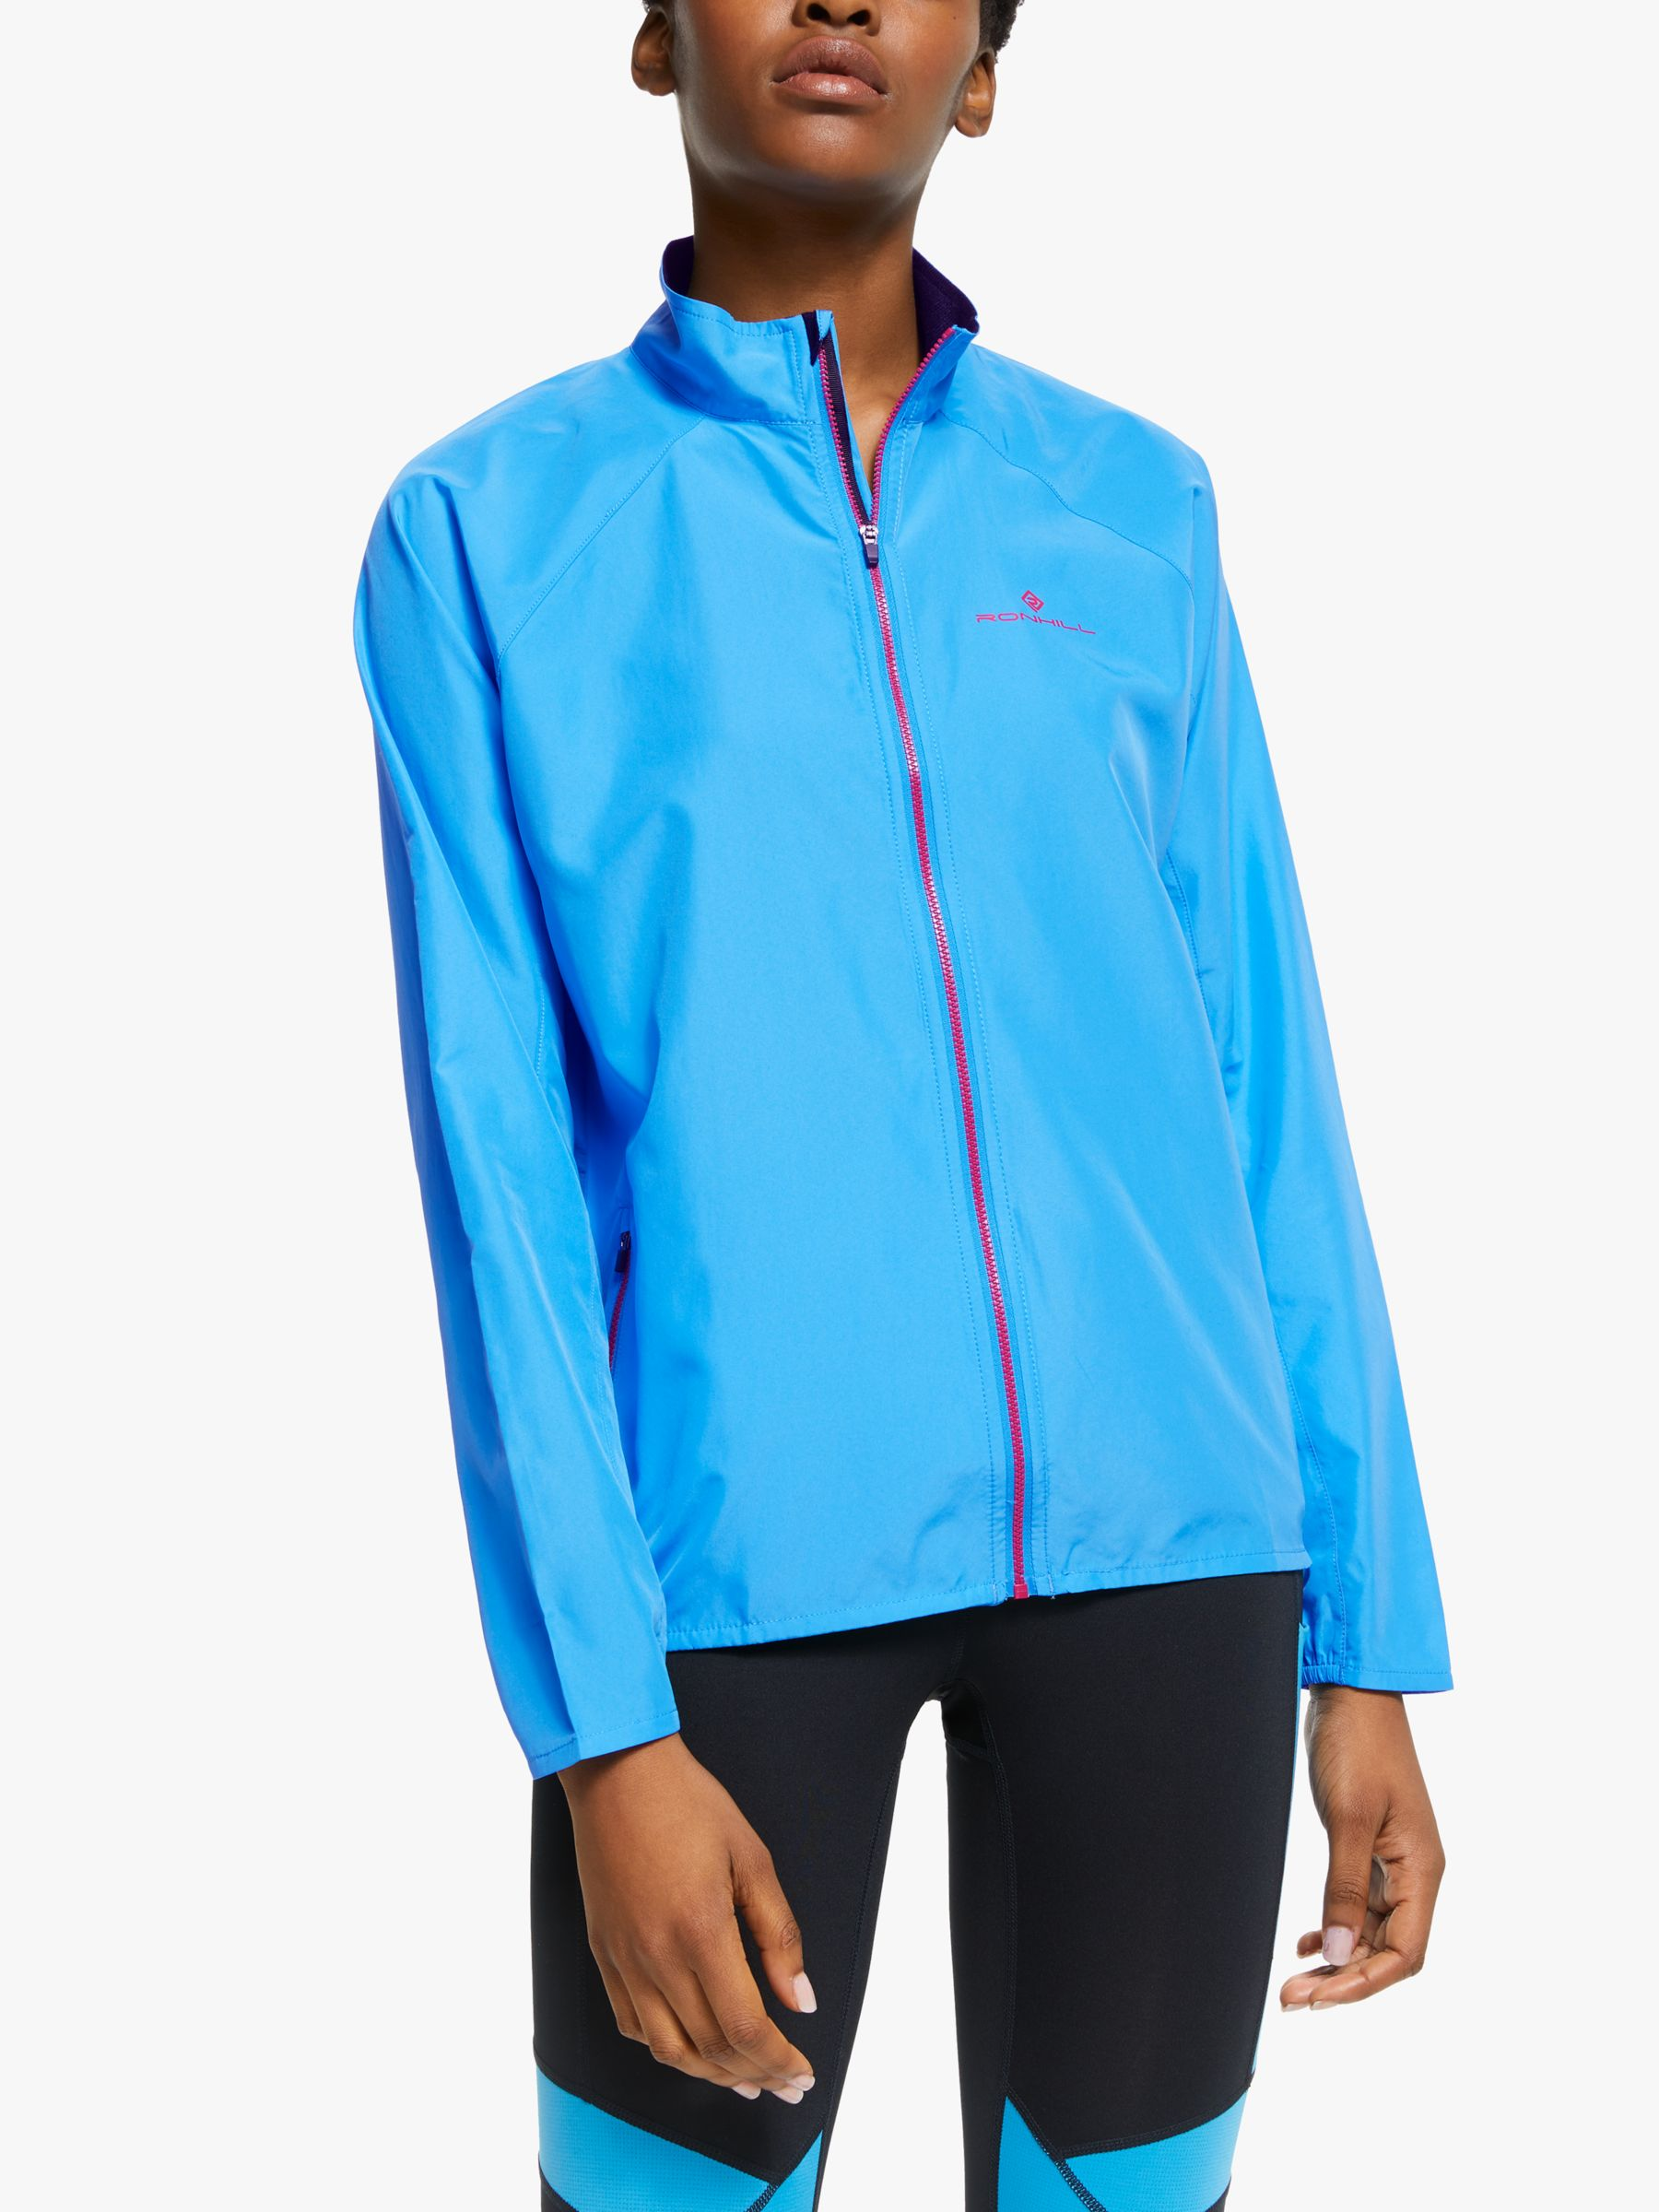 Ronhill Ronhill Everyday Women's Running Jacket, Sky Blue/Cherryade